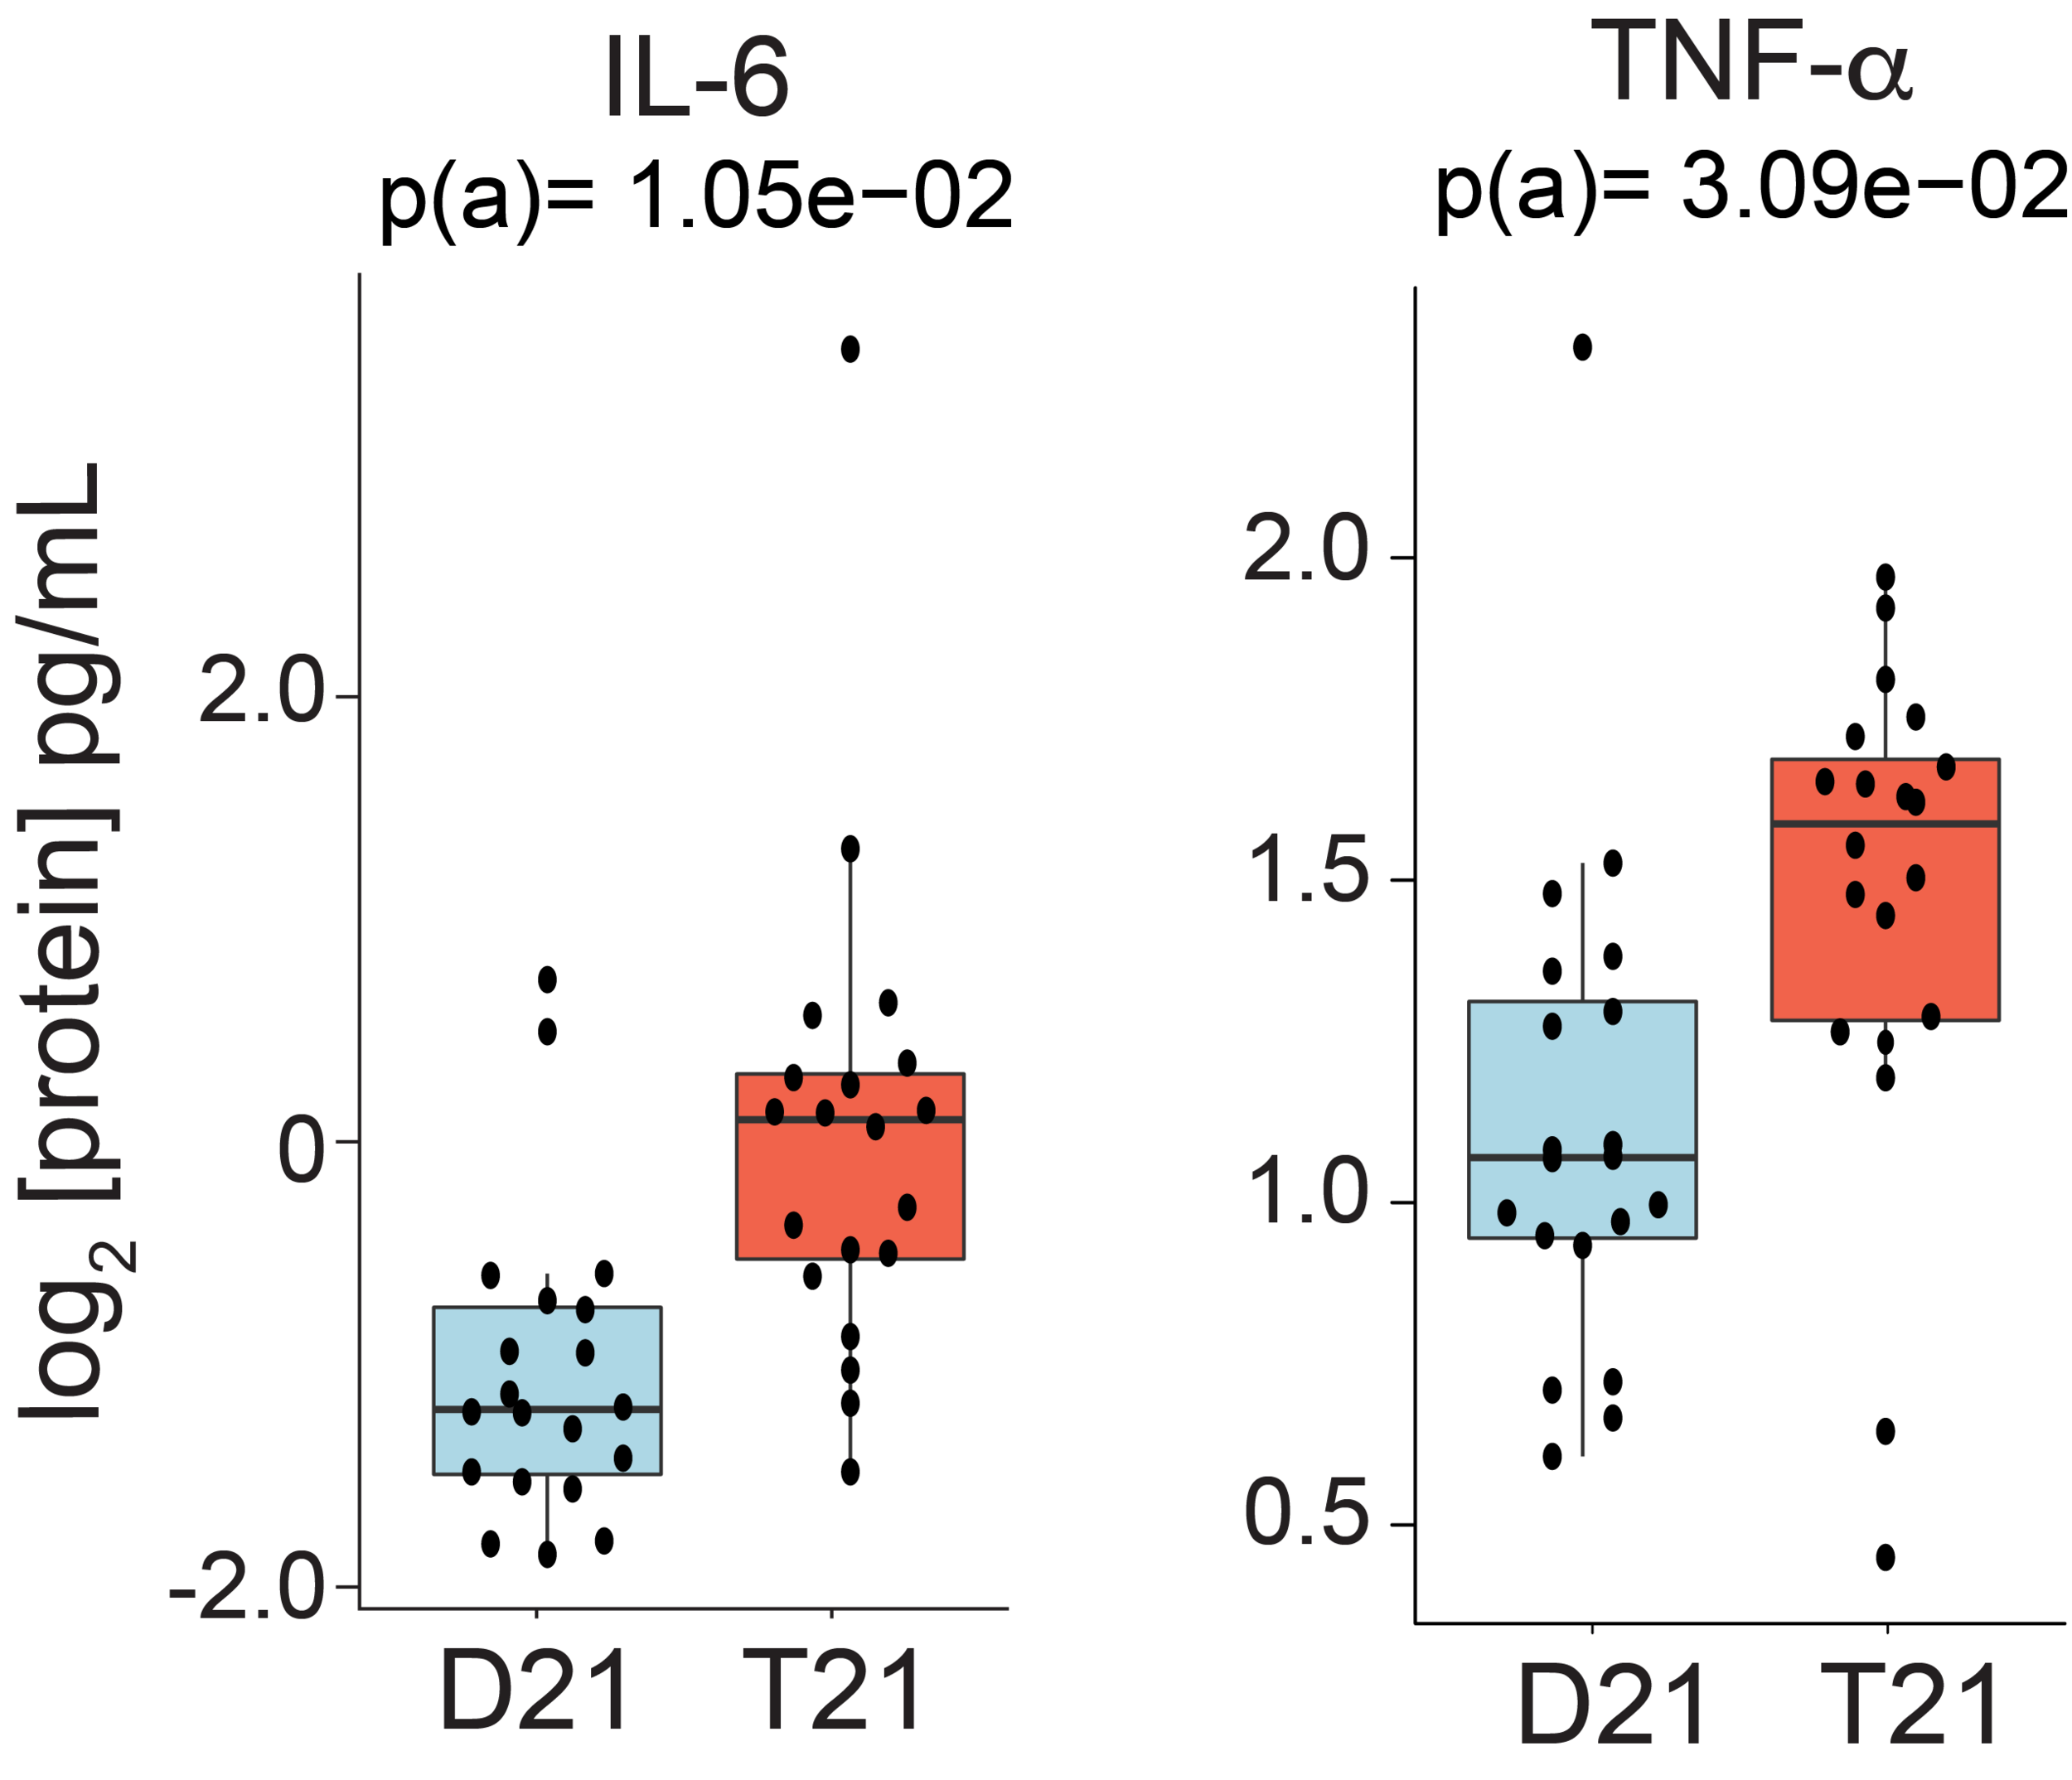 Examples of increased levels of two common inflammatory cytokines, IL-6 and TNF-alpha, in typical people (D21, blue) versus individuals with Down syndrome (T21, orange).